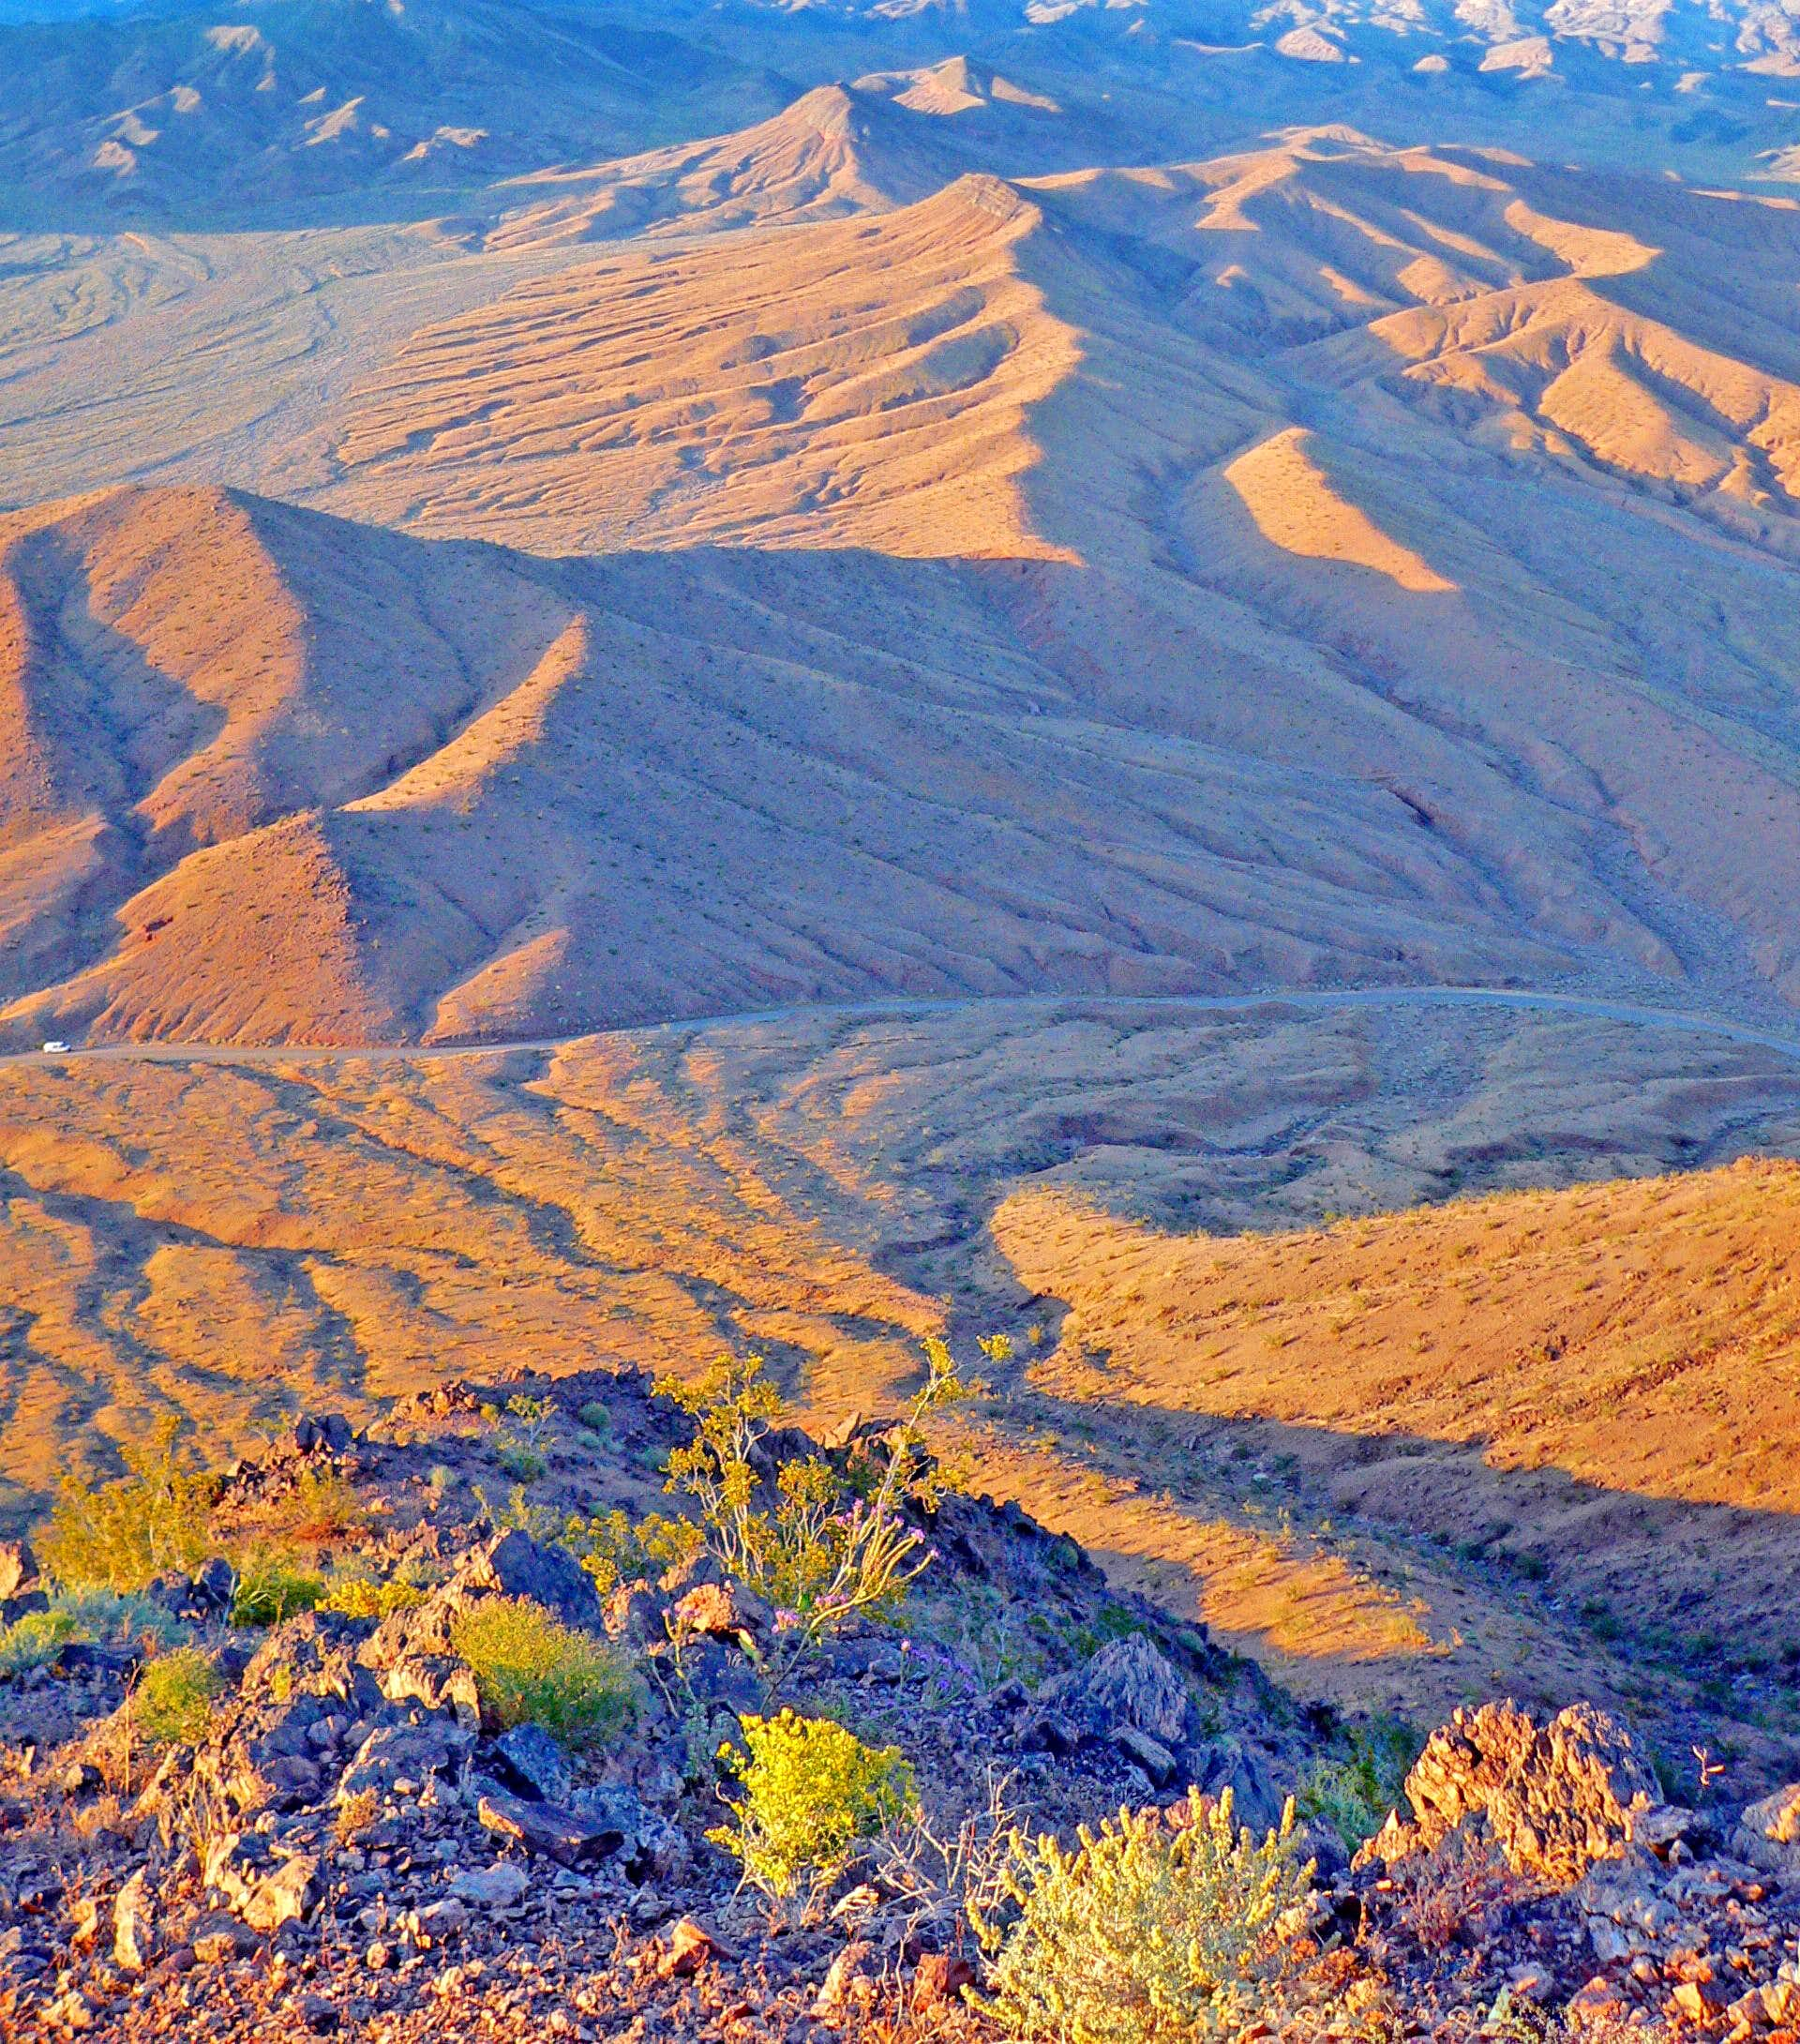 Above and around Death Valley